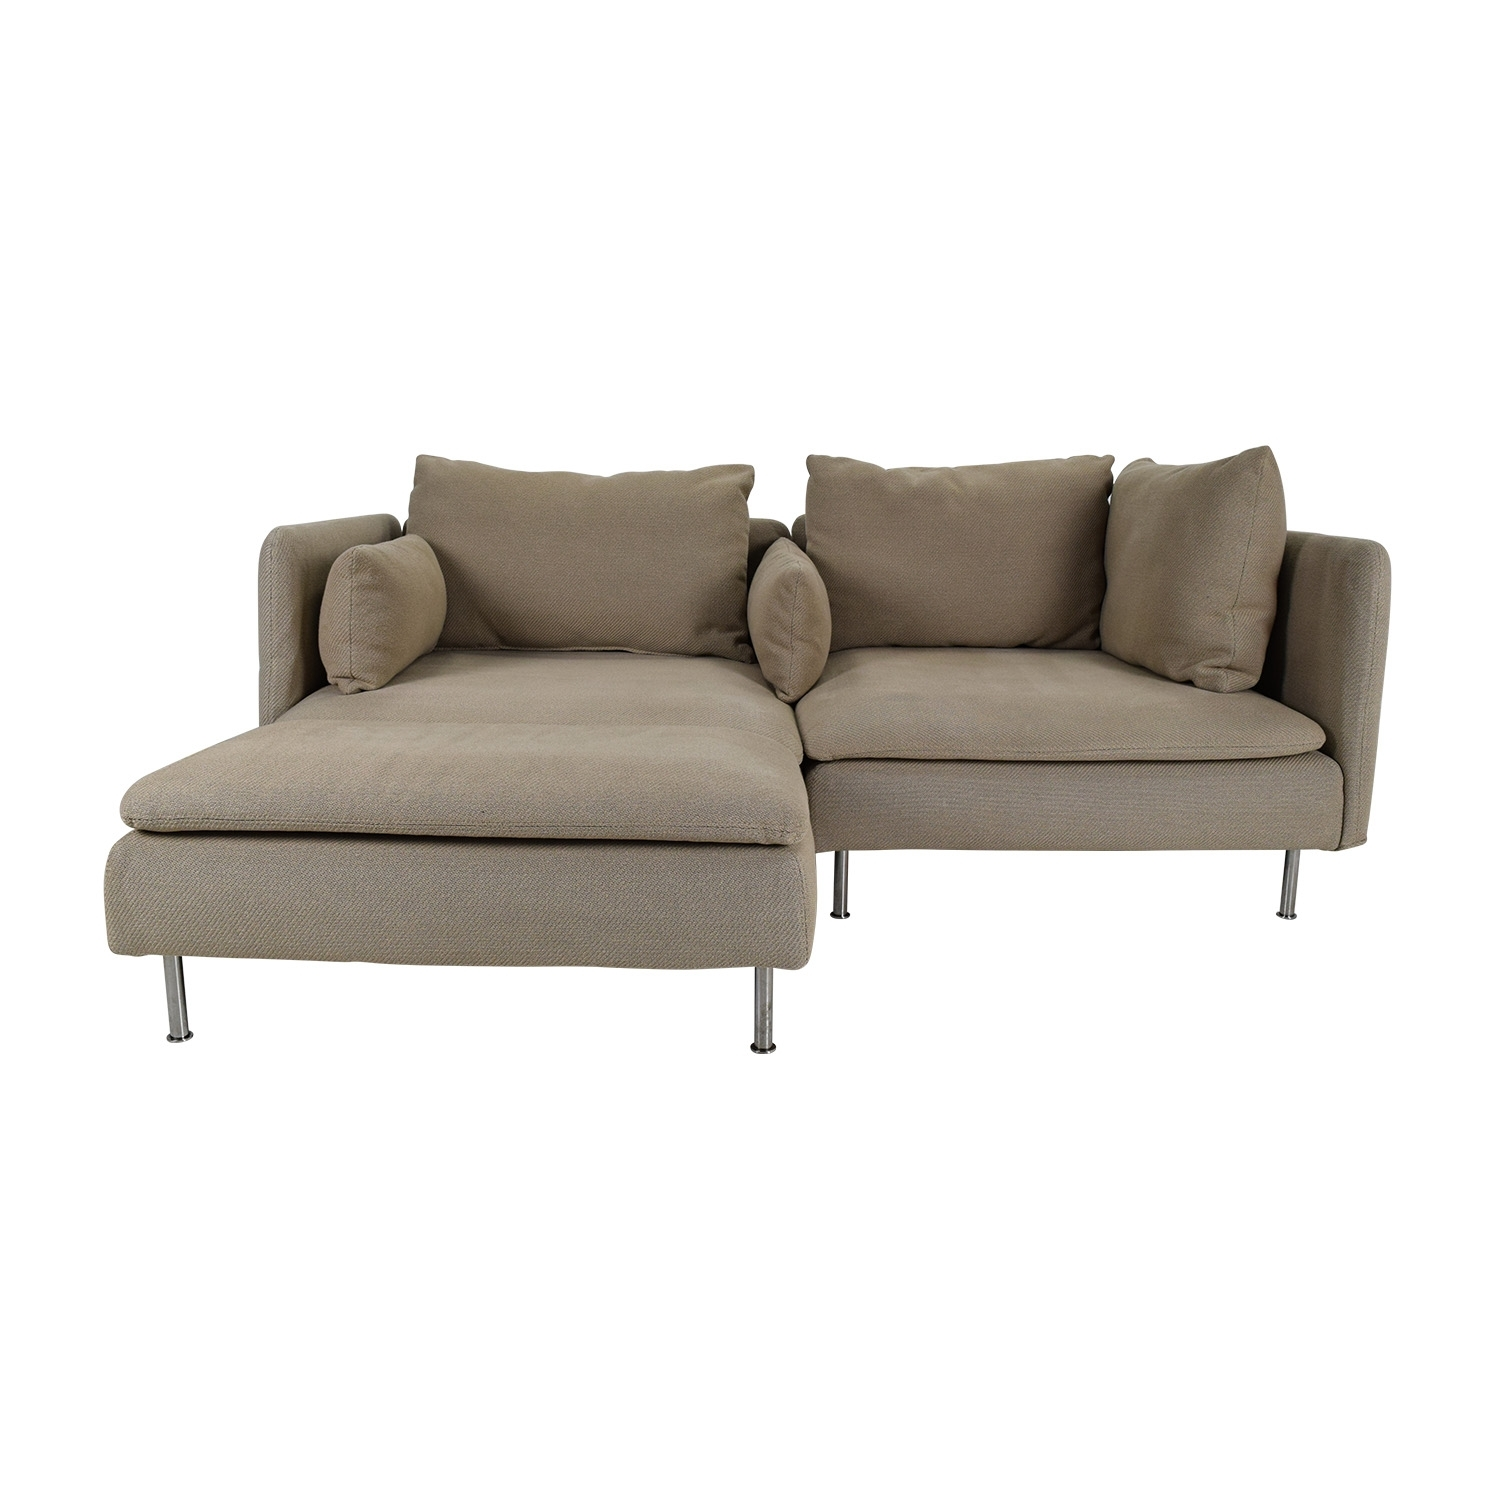 50% Off - Ikea Soderhamn Sectional Sofa / Sofas for Sectional Sofas At Ikea (Image 1 of 15)